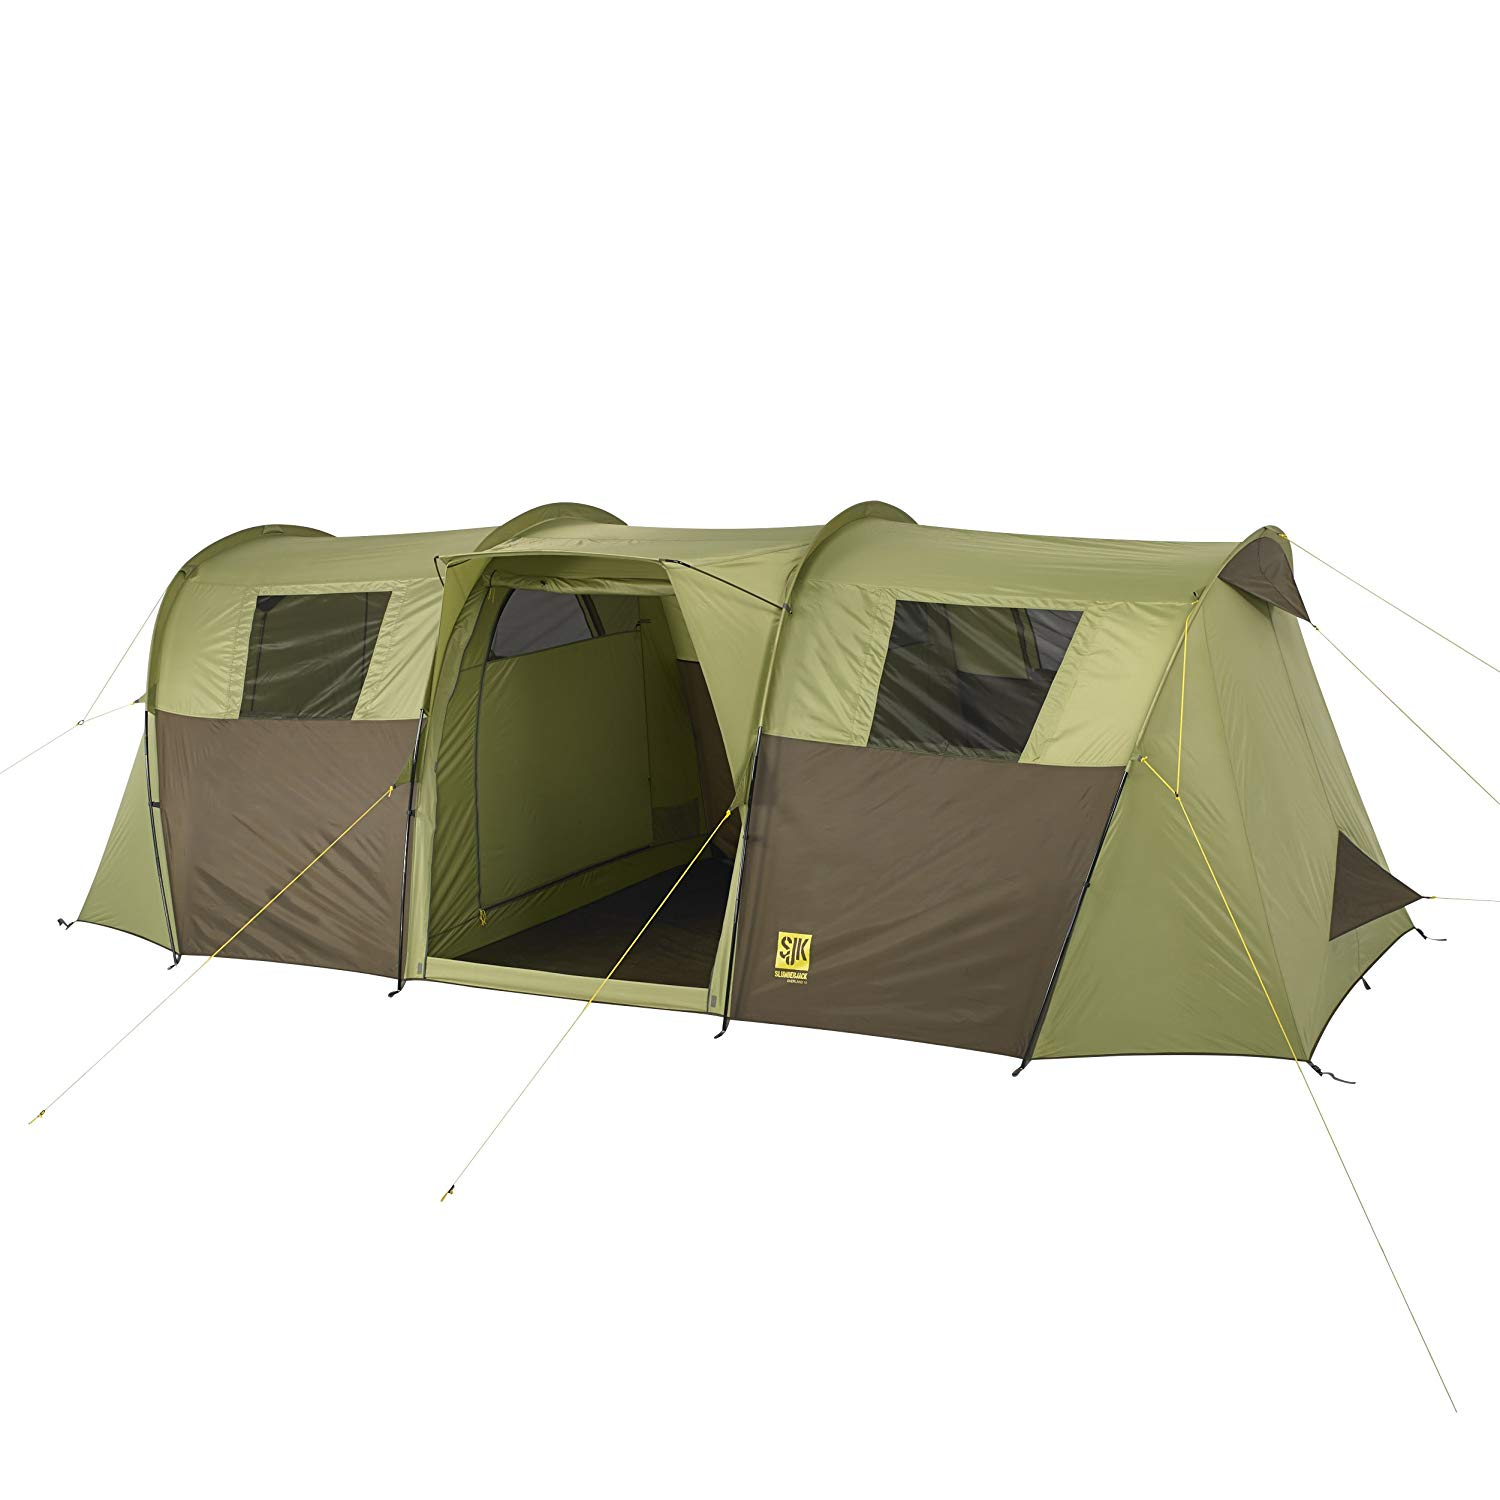 Top 10 Best 10 Person Tent 2021 For The Money Reviews 7